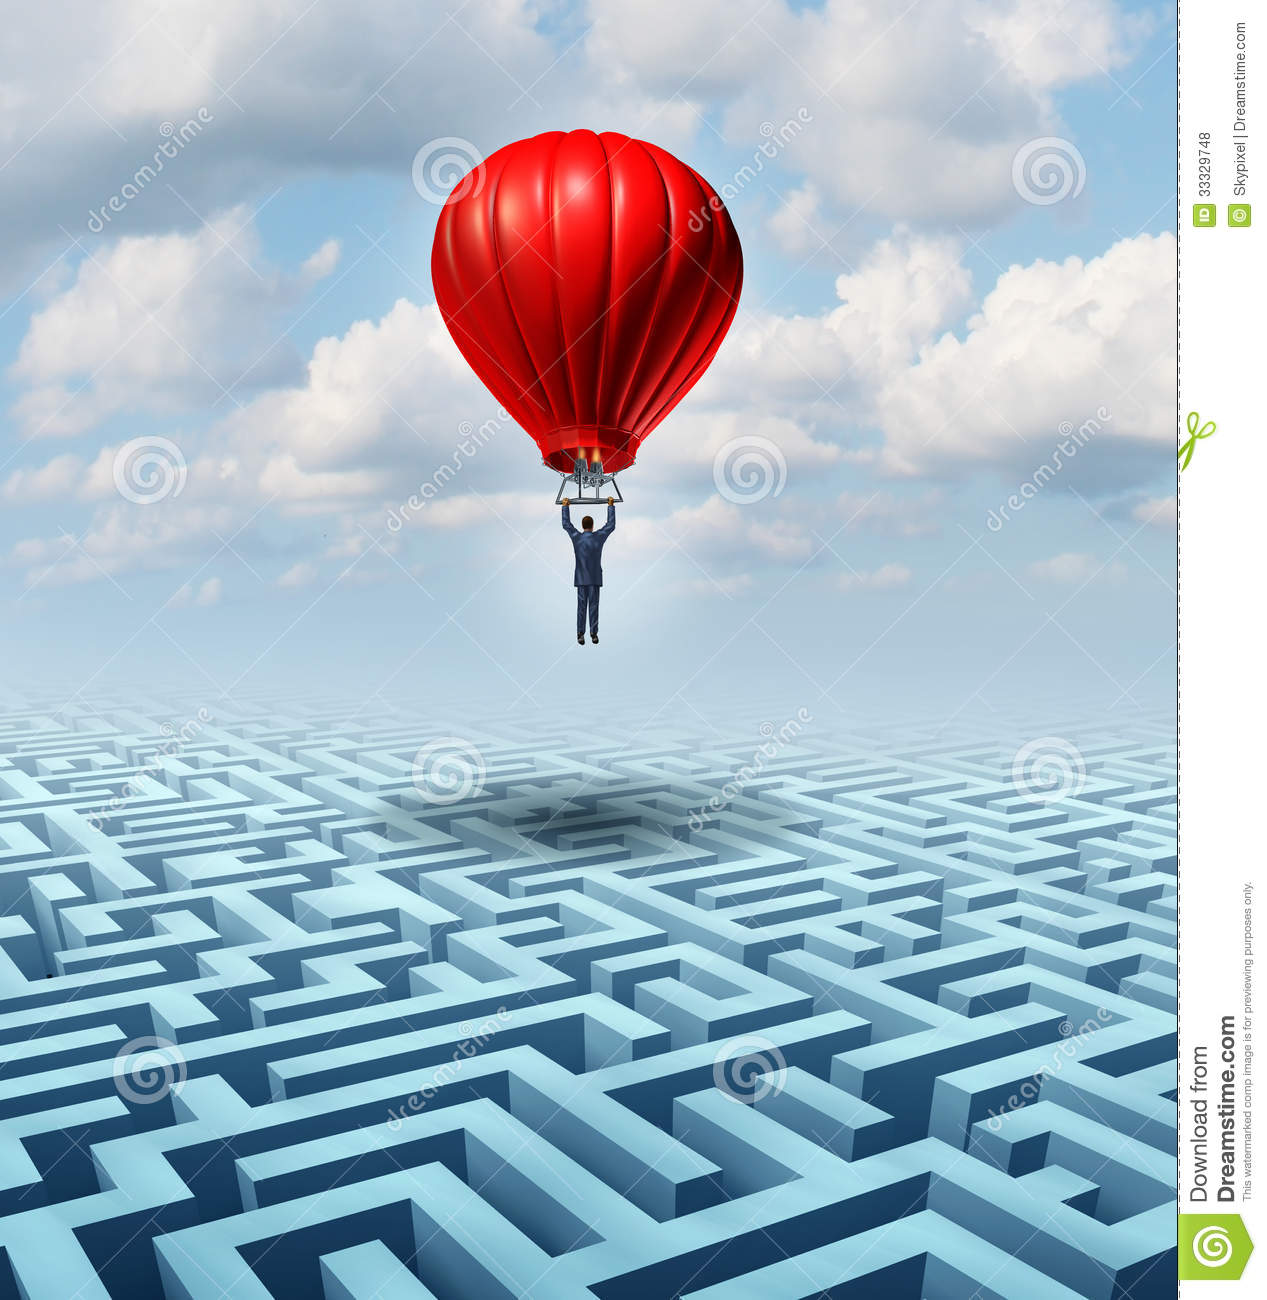 Http Www Dreamstime Com Royalty Free Stock Photos Rise Above Adversity Solution Leadership Businessman Flying Soaring Over Complicated Maze Help Hot Air Image33329748